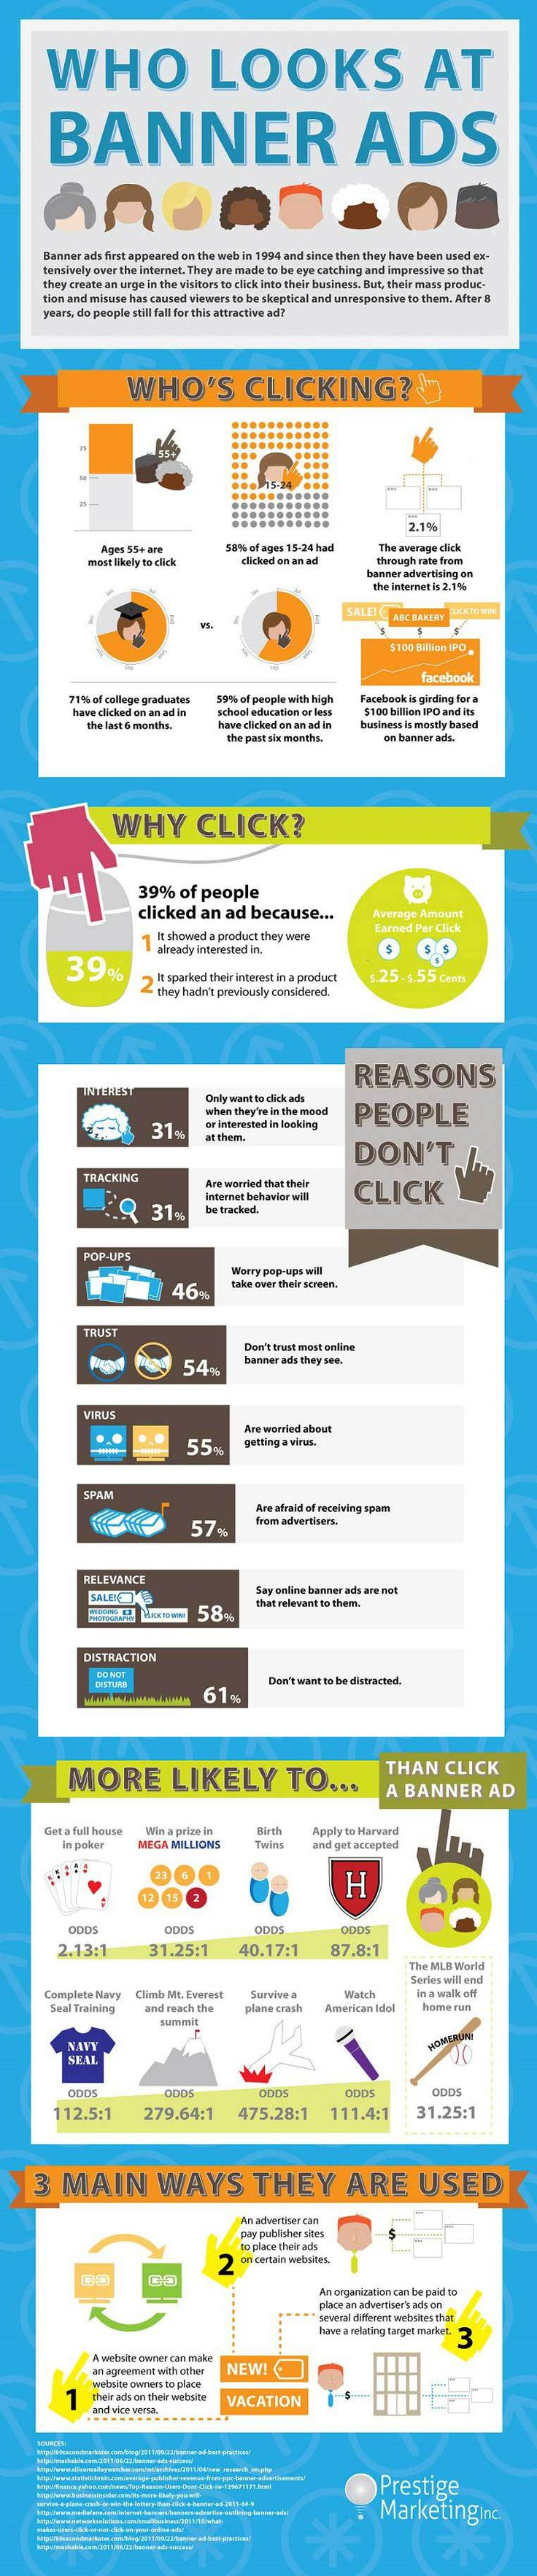 We thought this infographic by Prestige Marketing is useful in determining the effectiveness of banner ads for your marketing campaign.